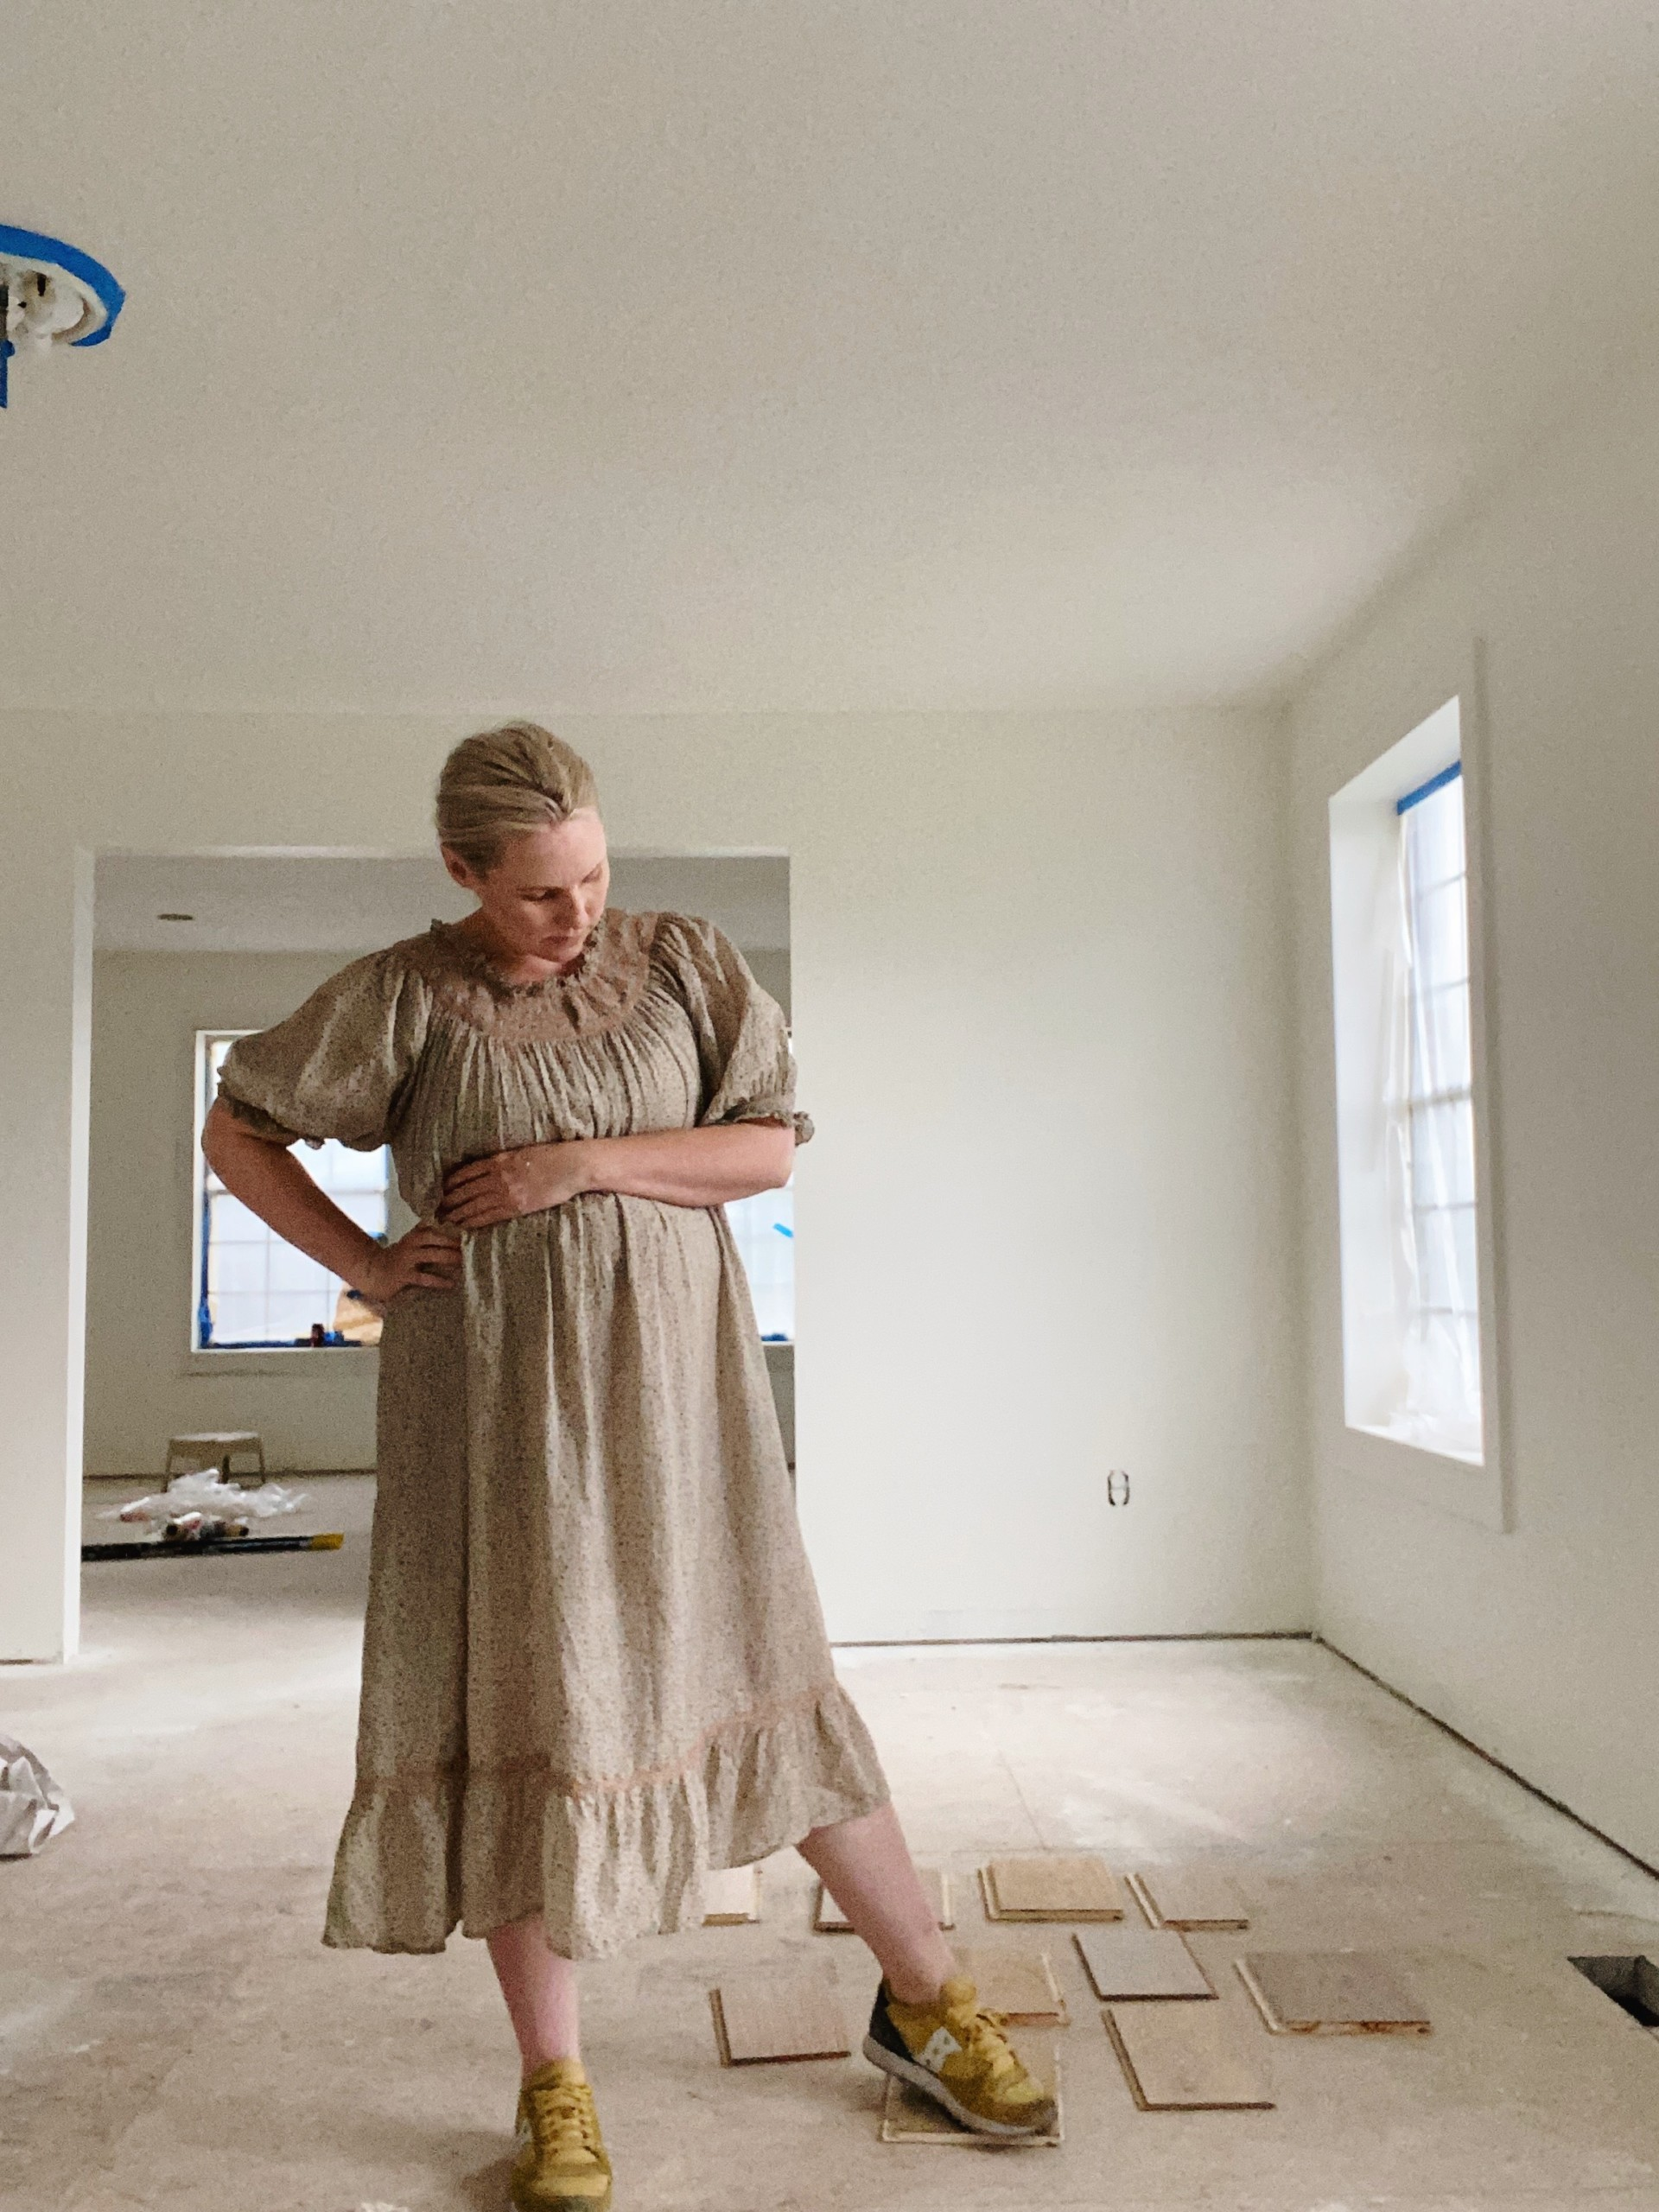 Where to make important investments in your cheap renovation (hint: flooring!)